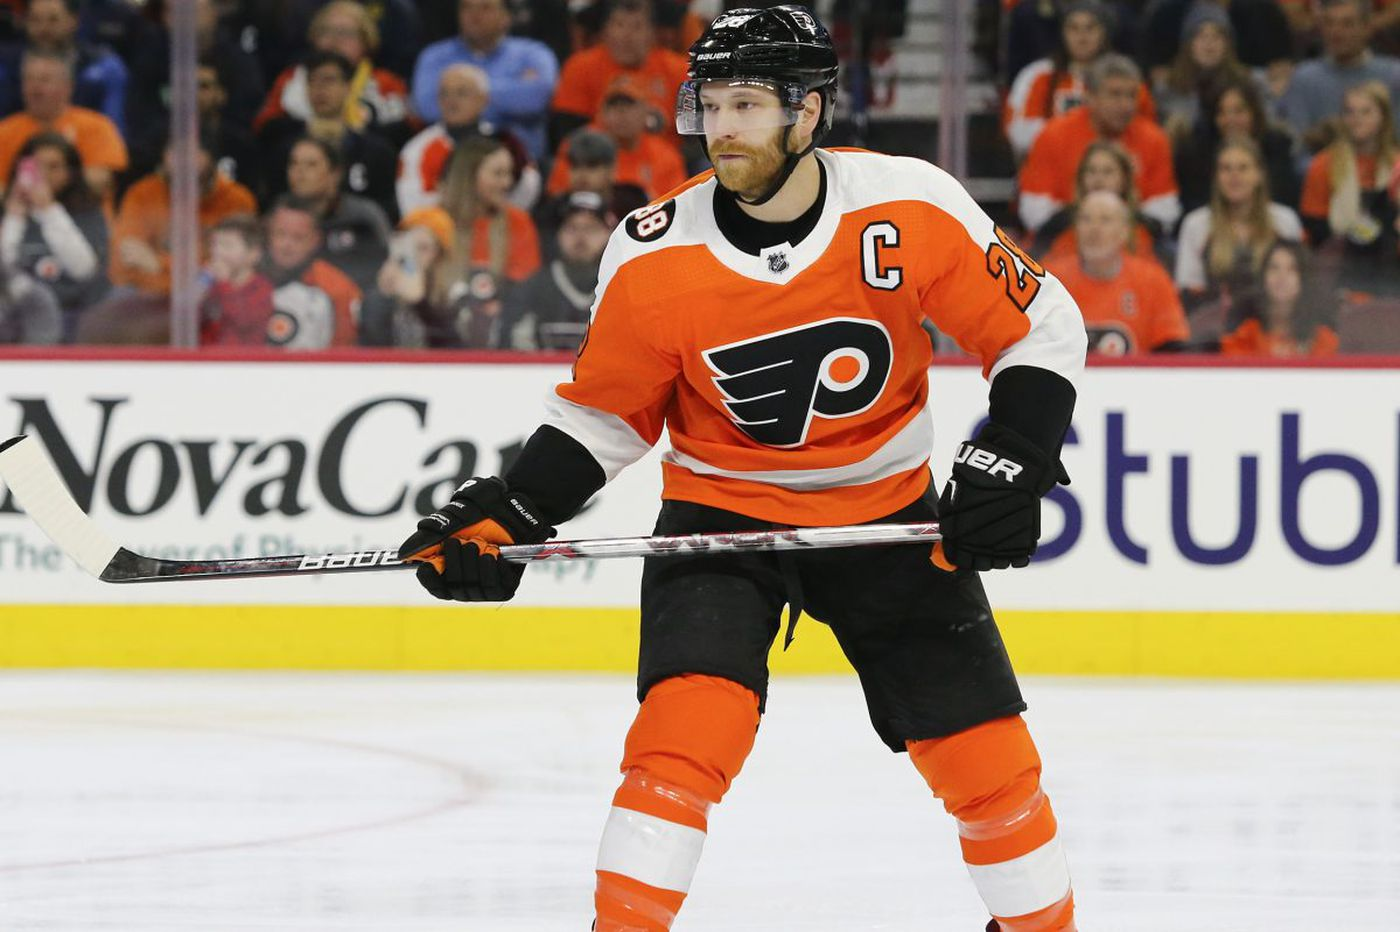 Flyers' Claude Giroux, healthier and wiser, back among NHL elite | Sam Carchidi